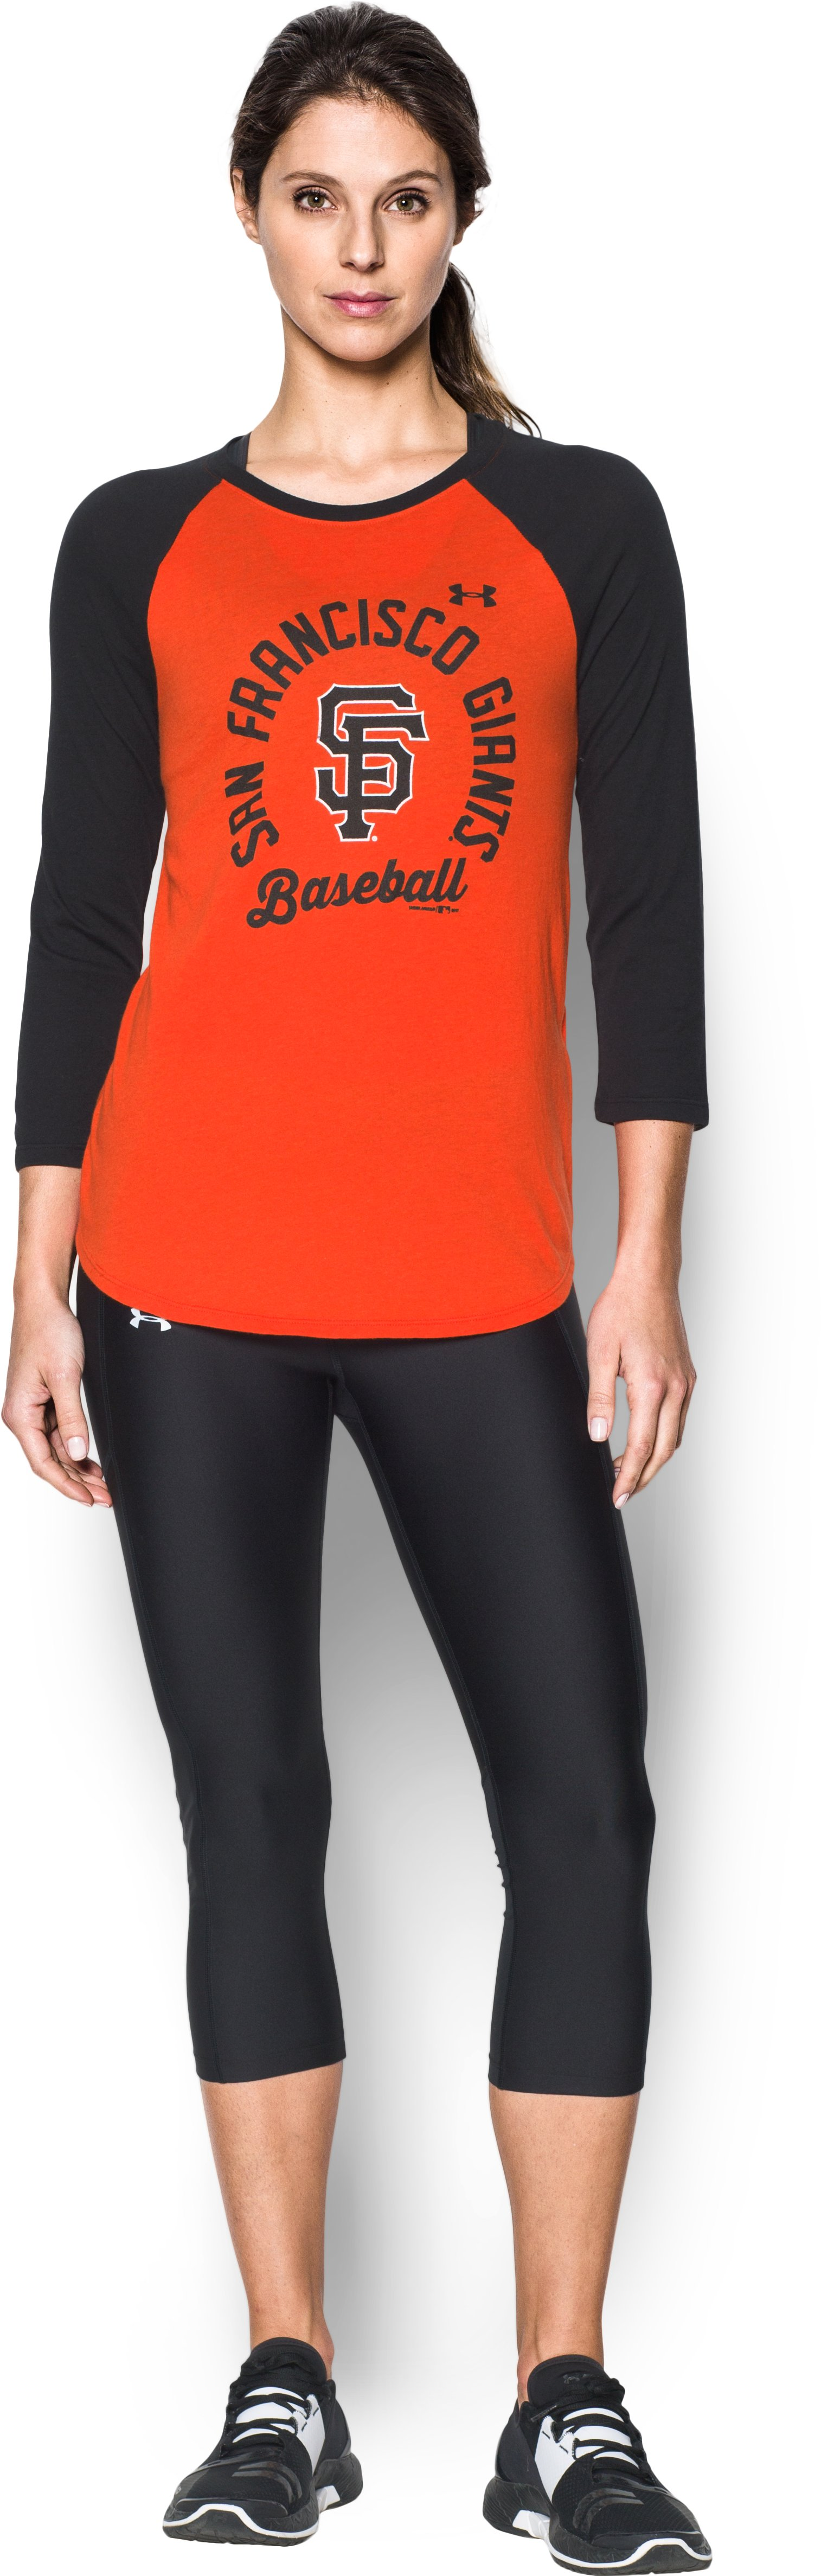 Women's San Francisco Giants ¾ Sleeve T-Shirt, Dark Orange